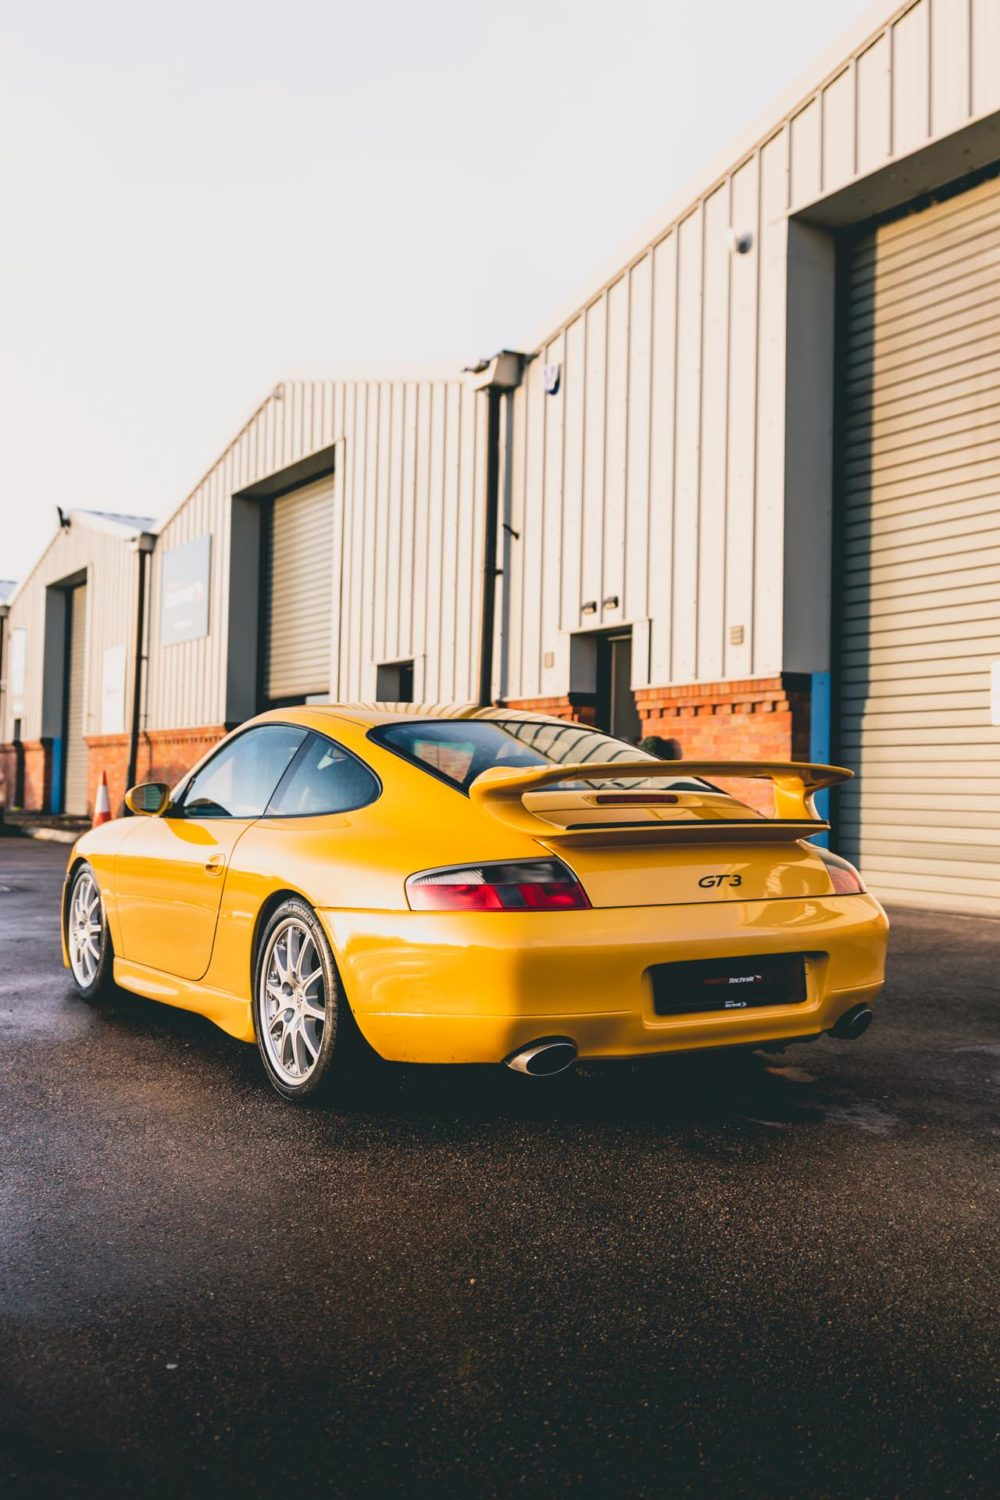 996.1 gt3 clubsport outside RPM